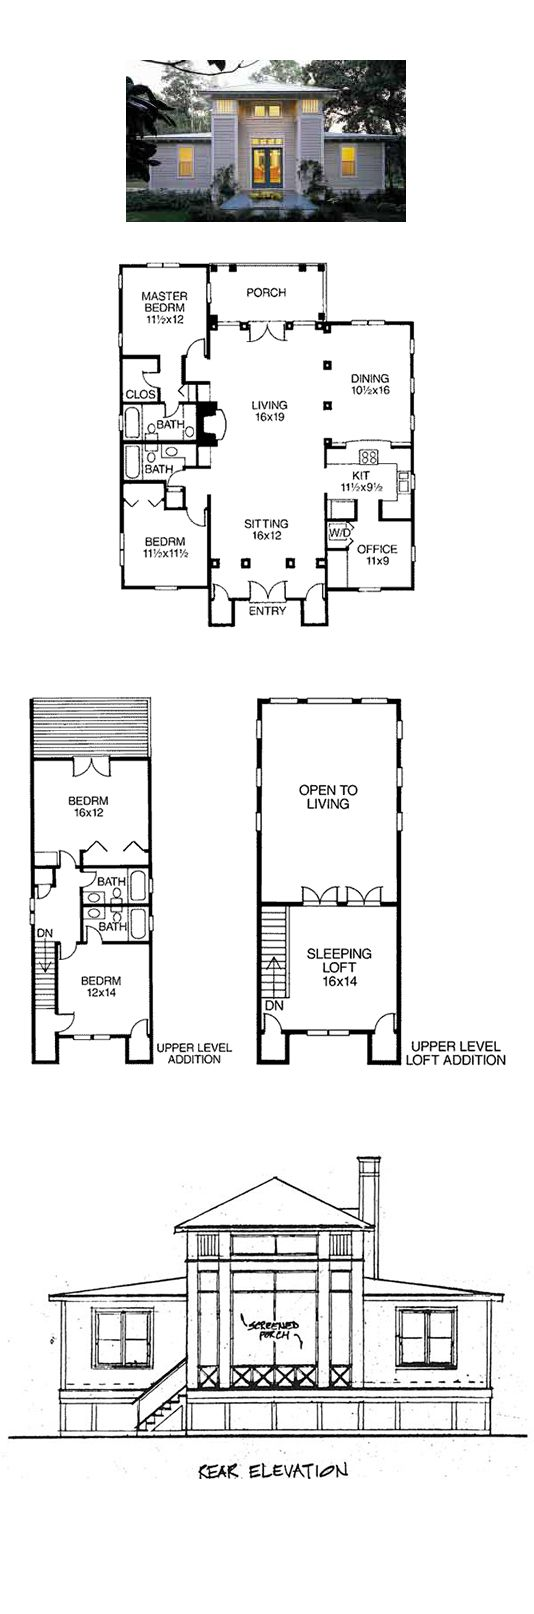 16 best images about exclusive home plans on pinterest for 16 x 48 house plans